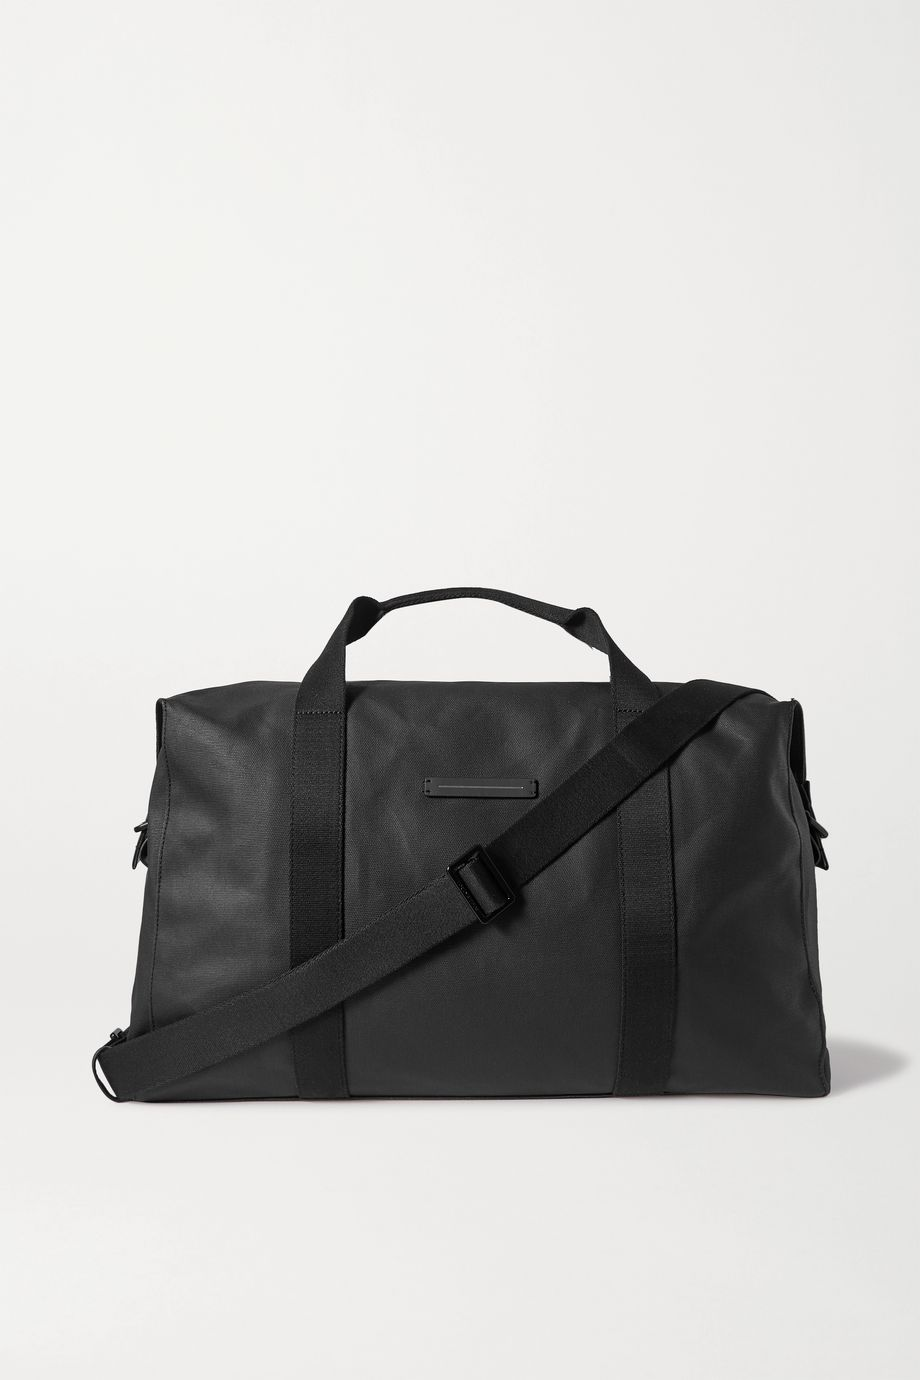 Horizn Studios SoFo waxed-canvas weekend bag